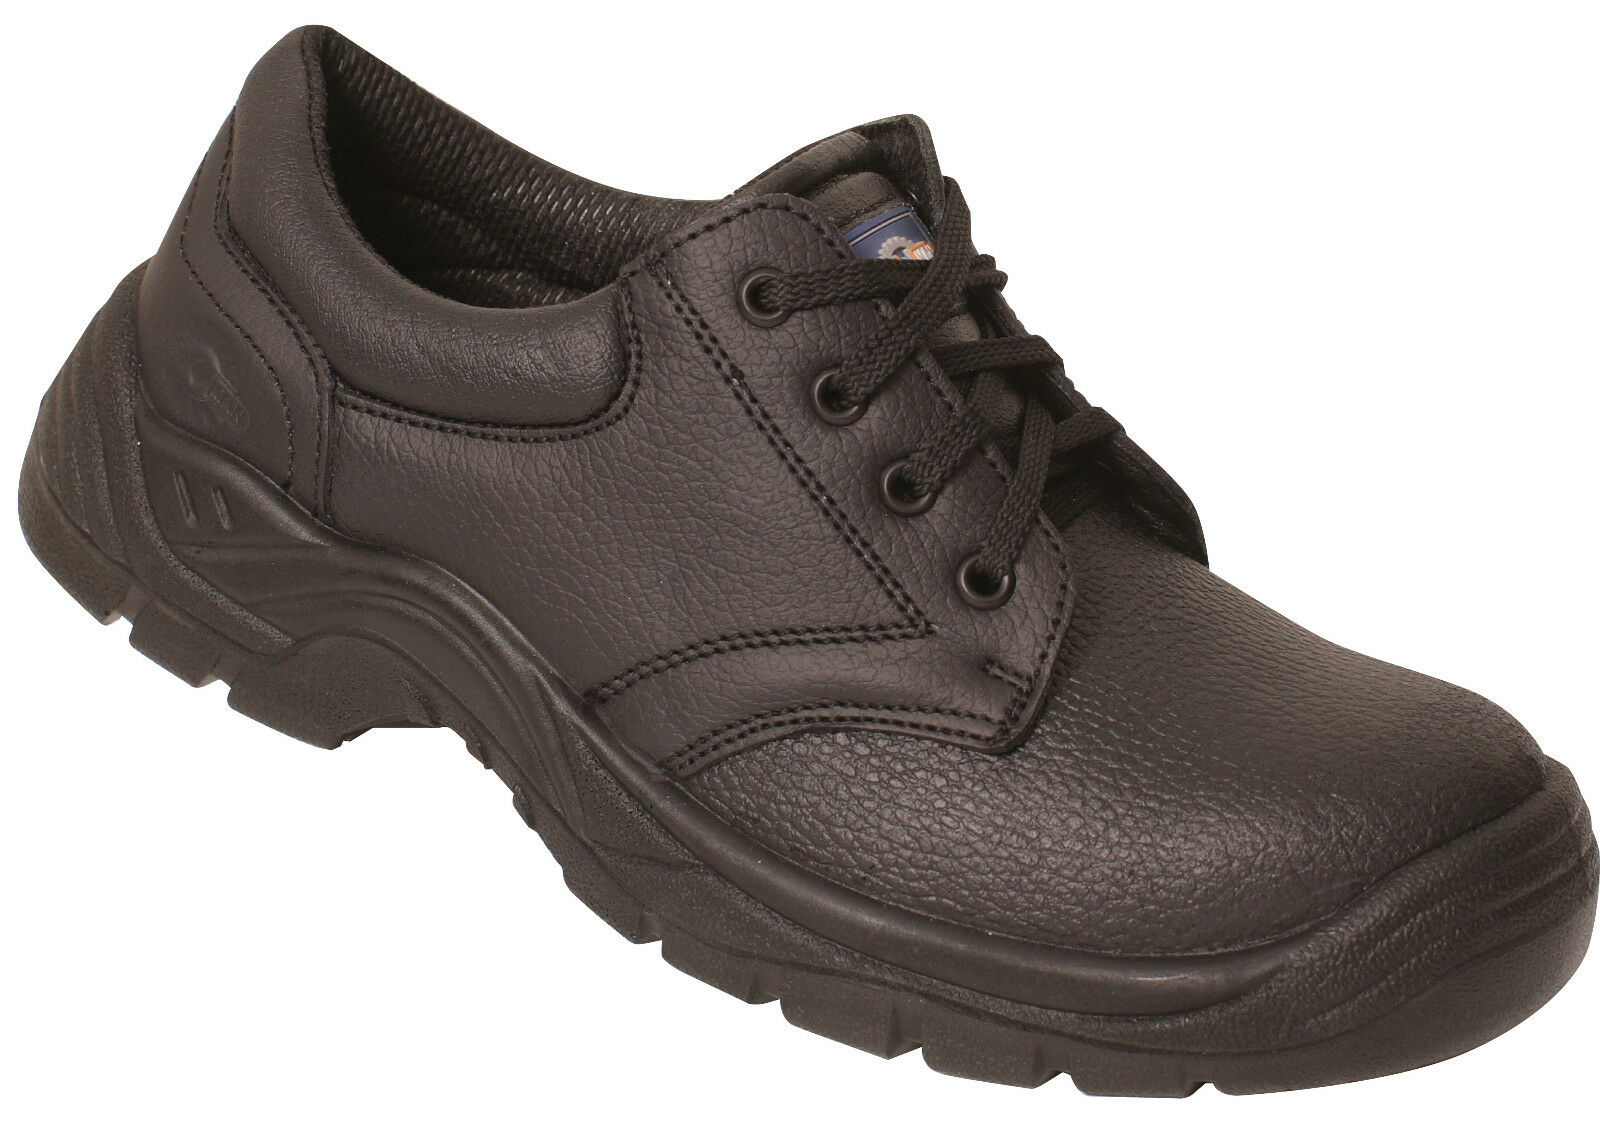 Pro Man PM102 S3 Black Leather Steel Toe Cap Chukka PPE Safety Shoes Work Shoes PPE Chukka e4c6e1